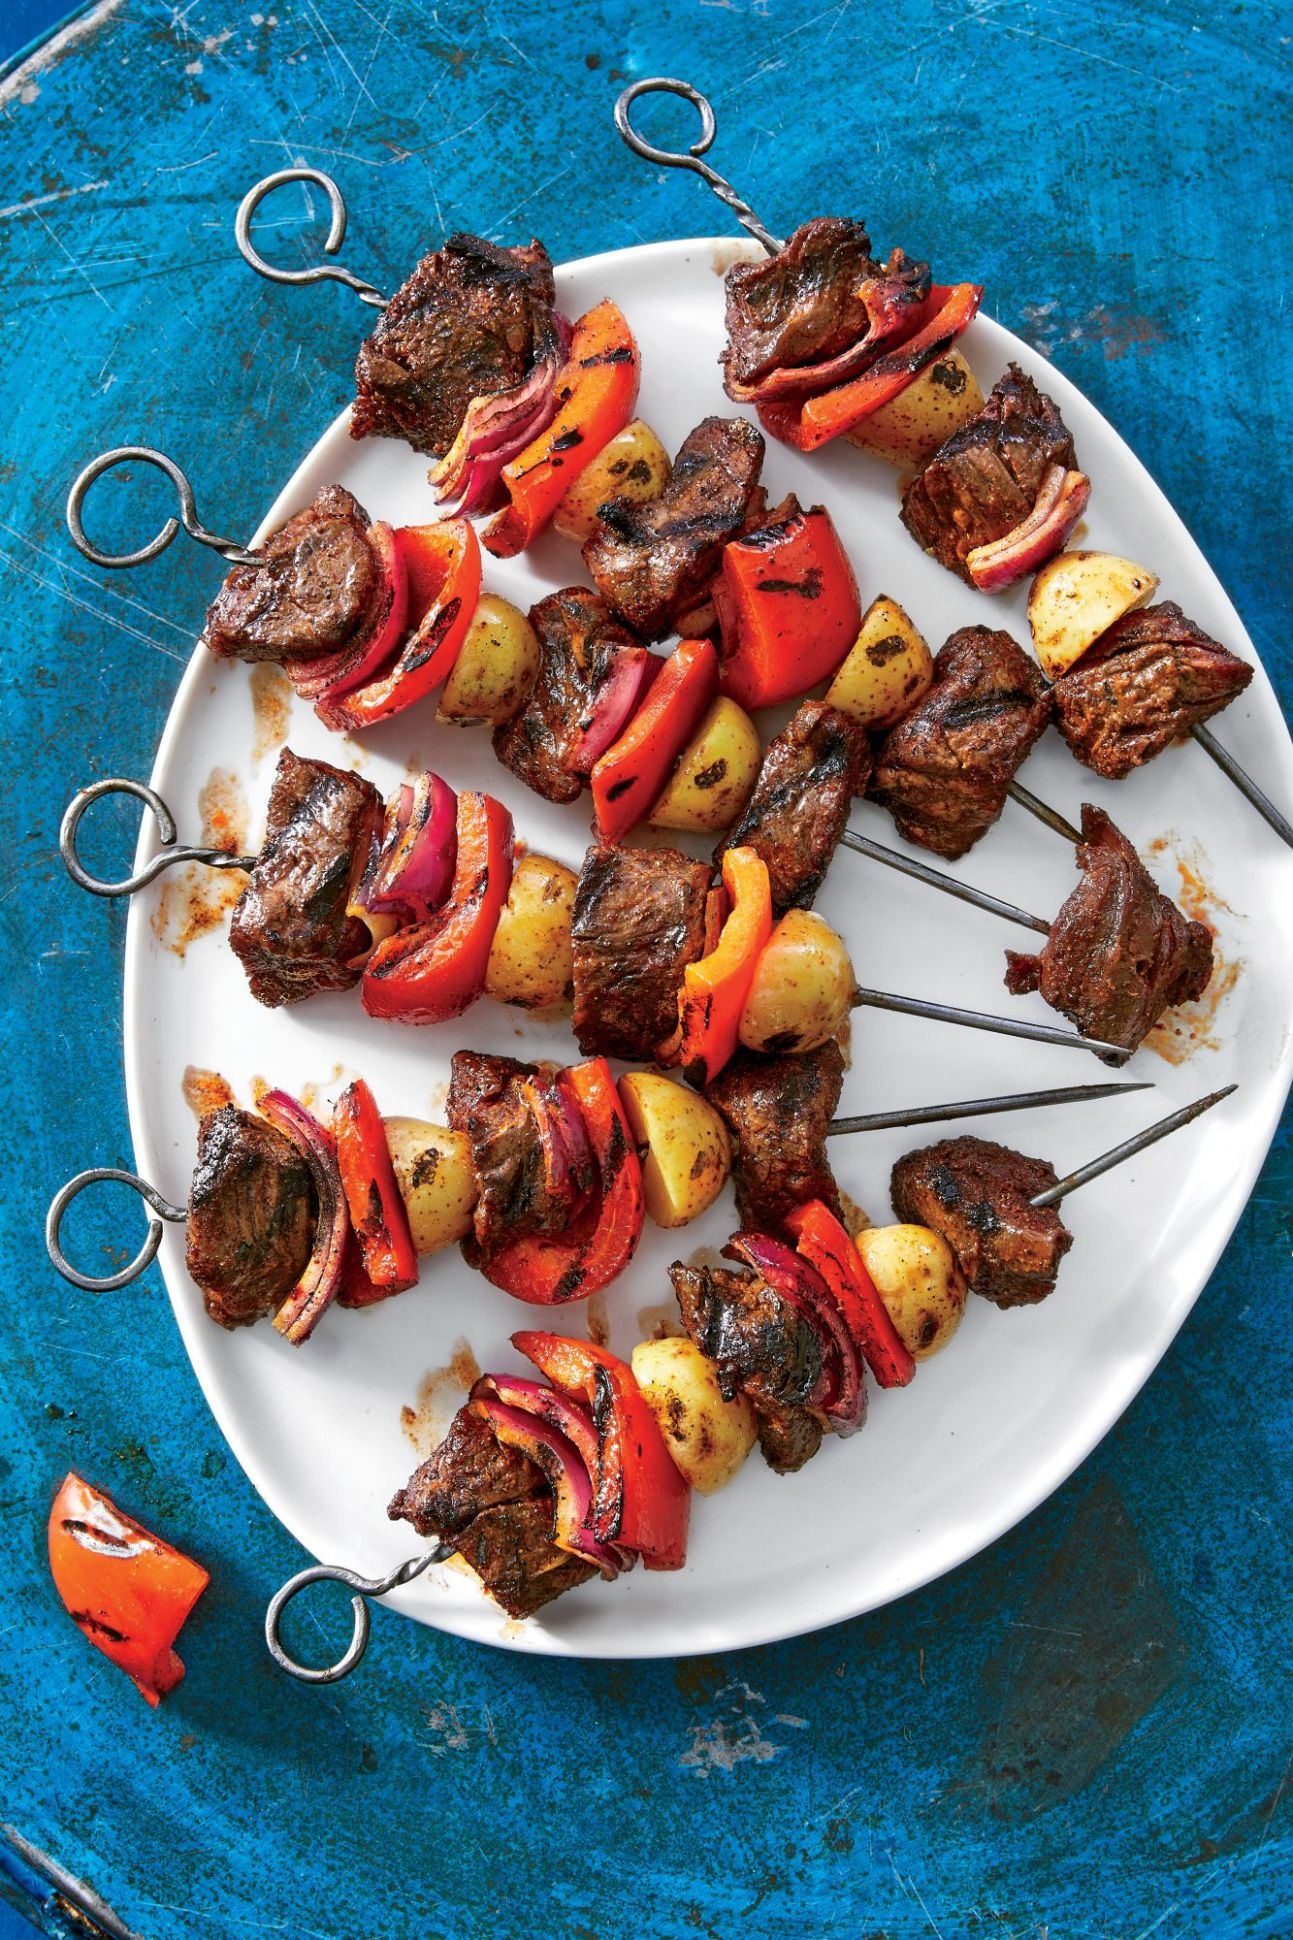 Summer Dinner Ideas That Make The Most of The Season | Southern Living - Recipes Dinner Summer